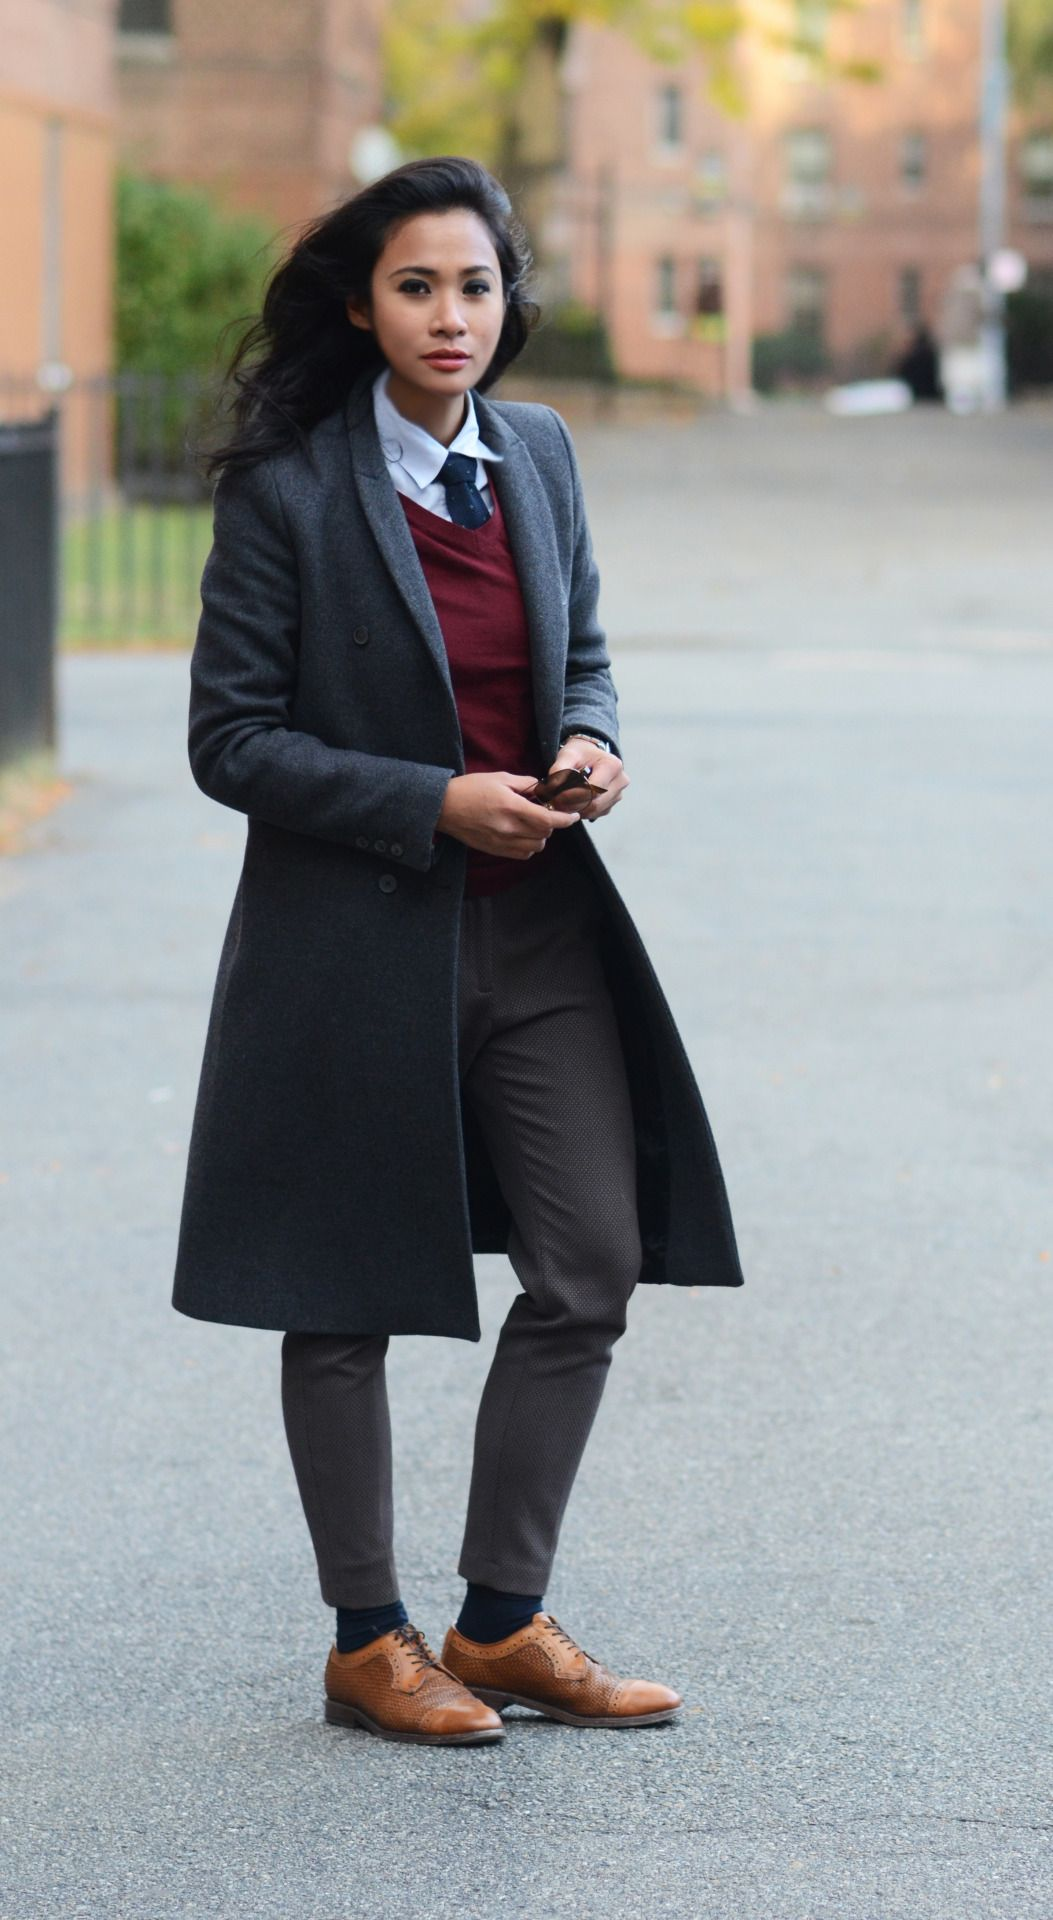 Style blog exclusively for tomboys., la-garconniere-: coat / H&M ...